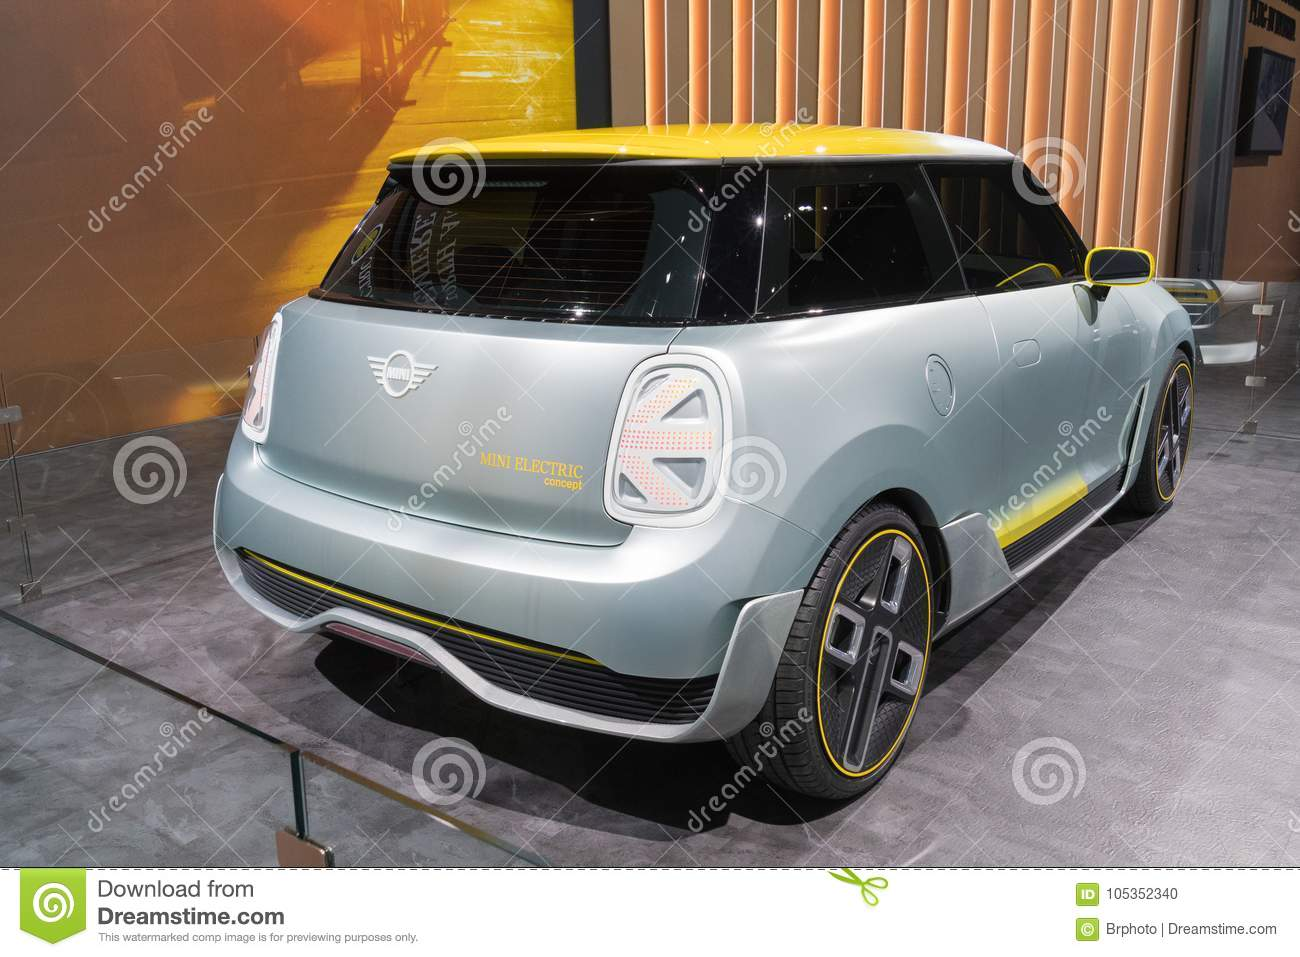 Mini Electric Concept On Display During La Auto Show Editorial Image